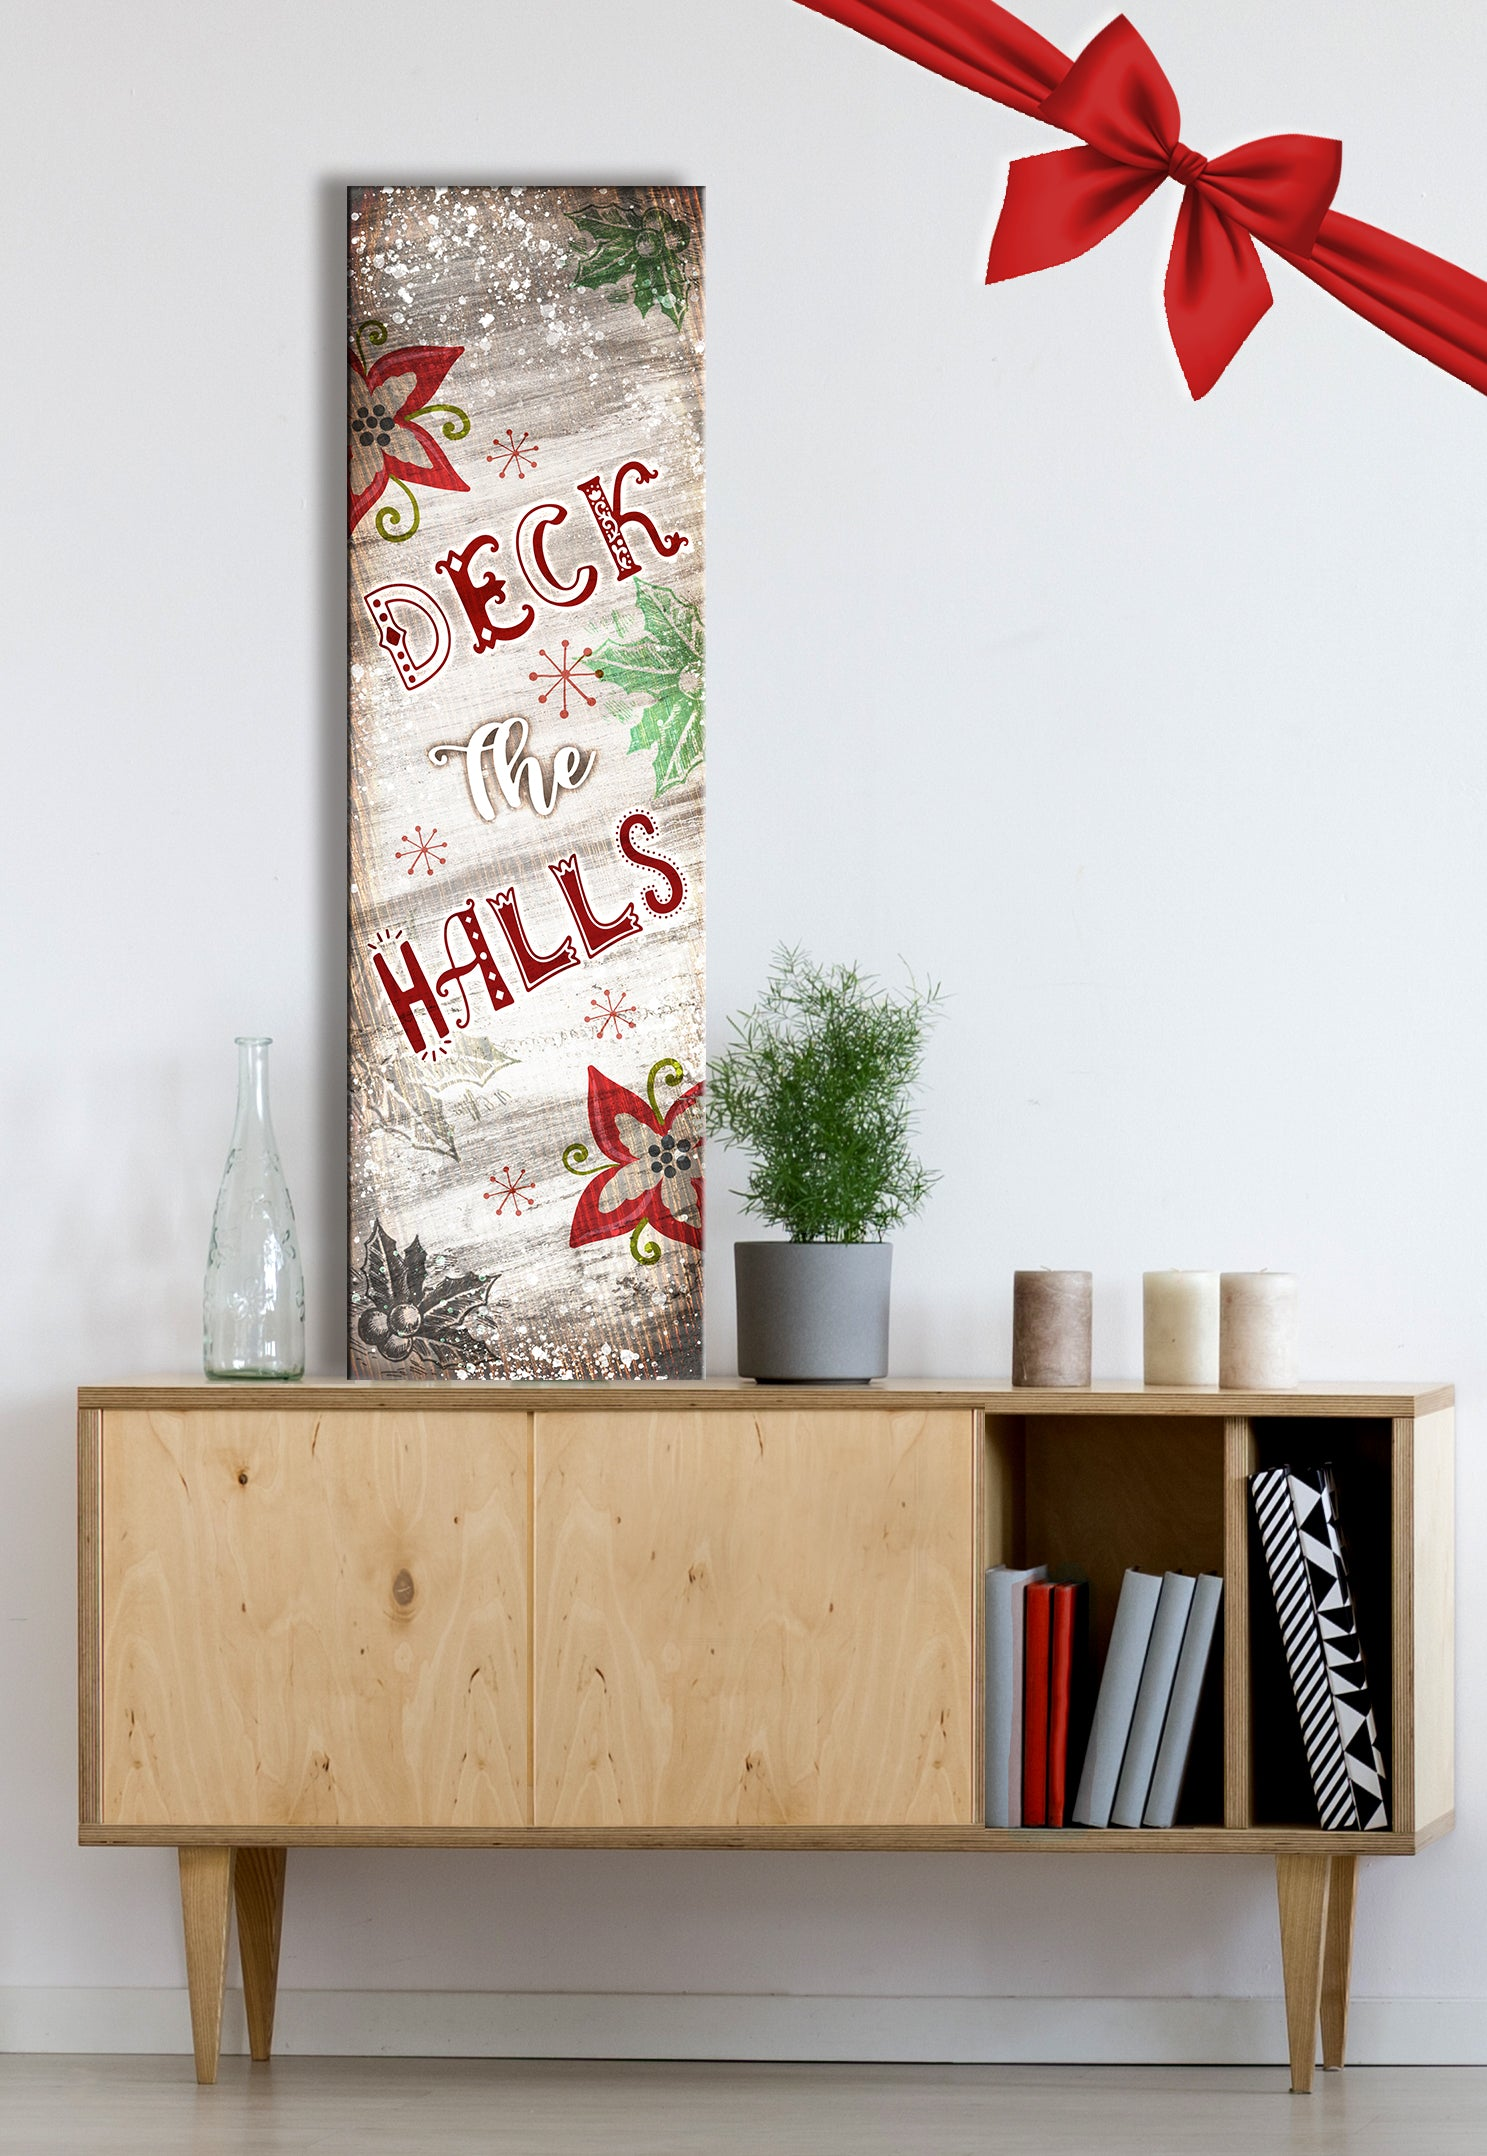 Holiday Decor Wall Art: Deck The Halls (Wood Frame Ready To Hang)